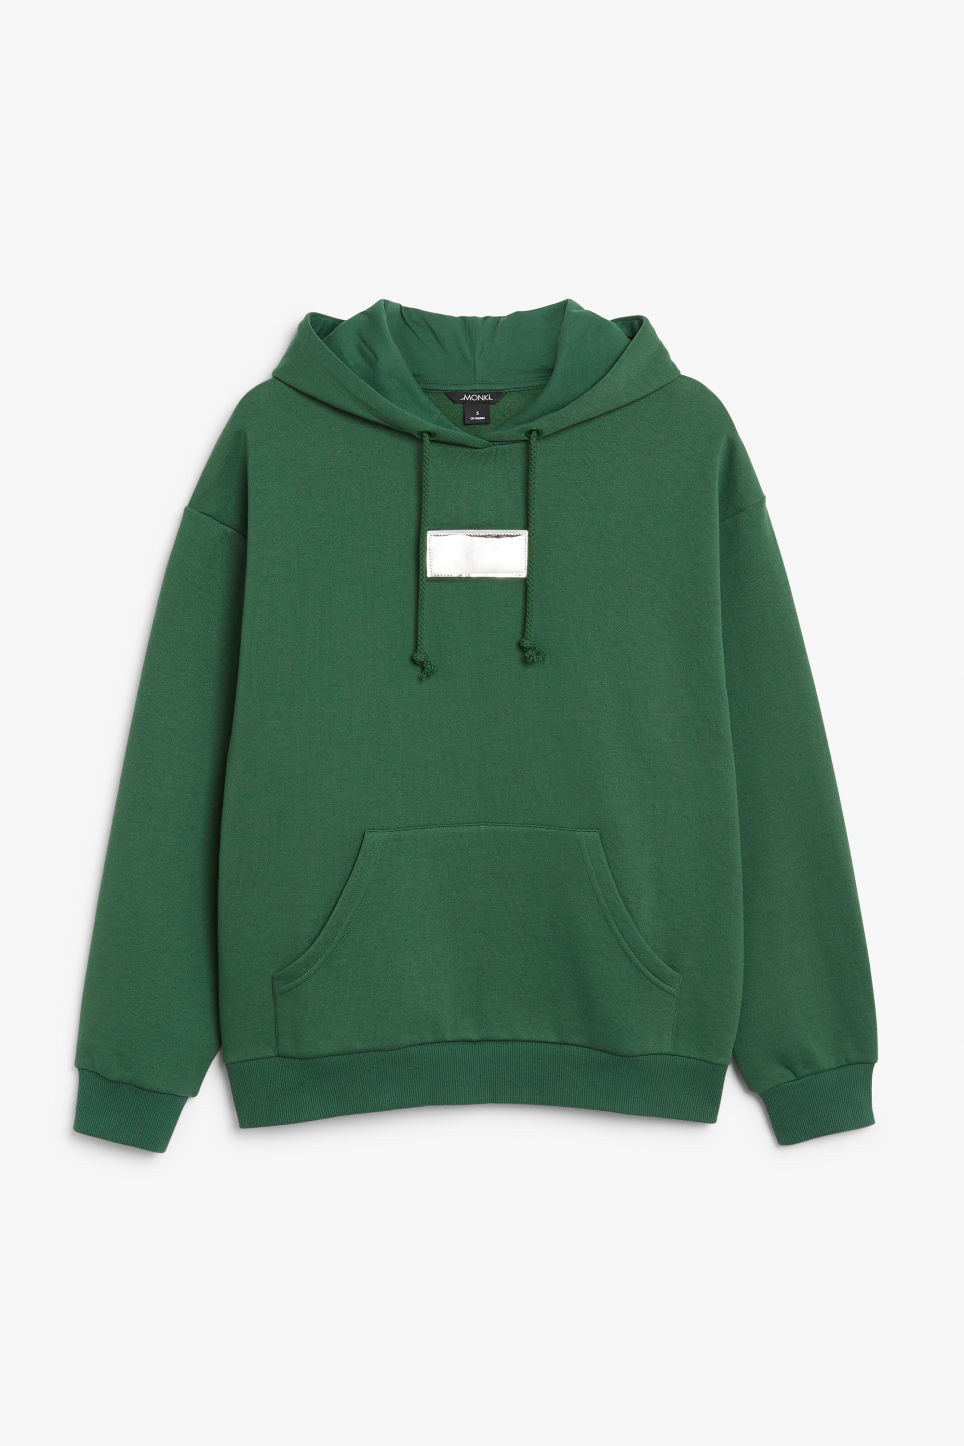 Detailed image of Monki swap-it hoodie in green